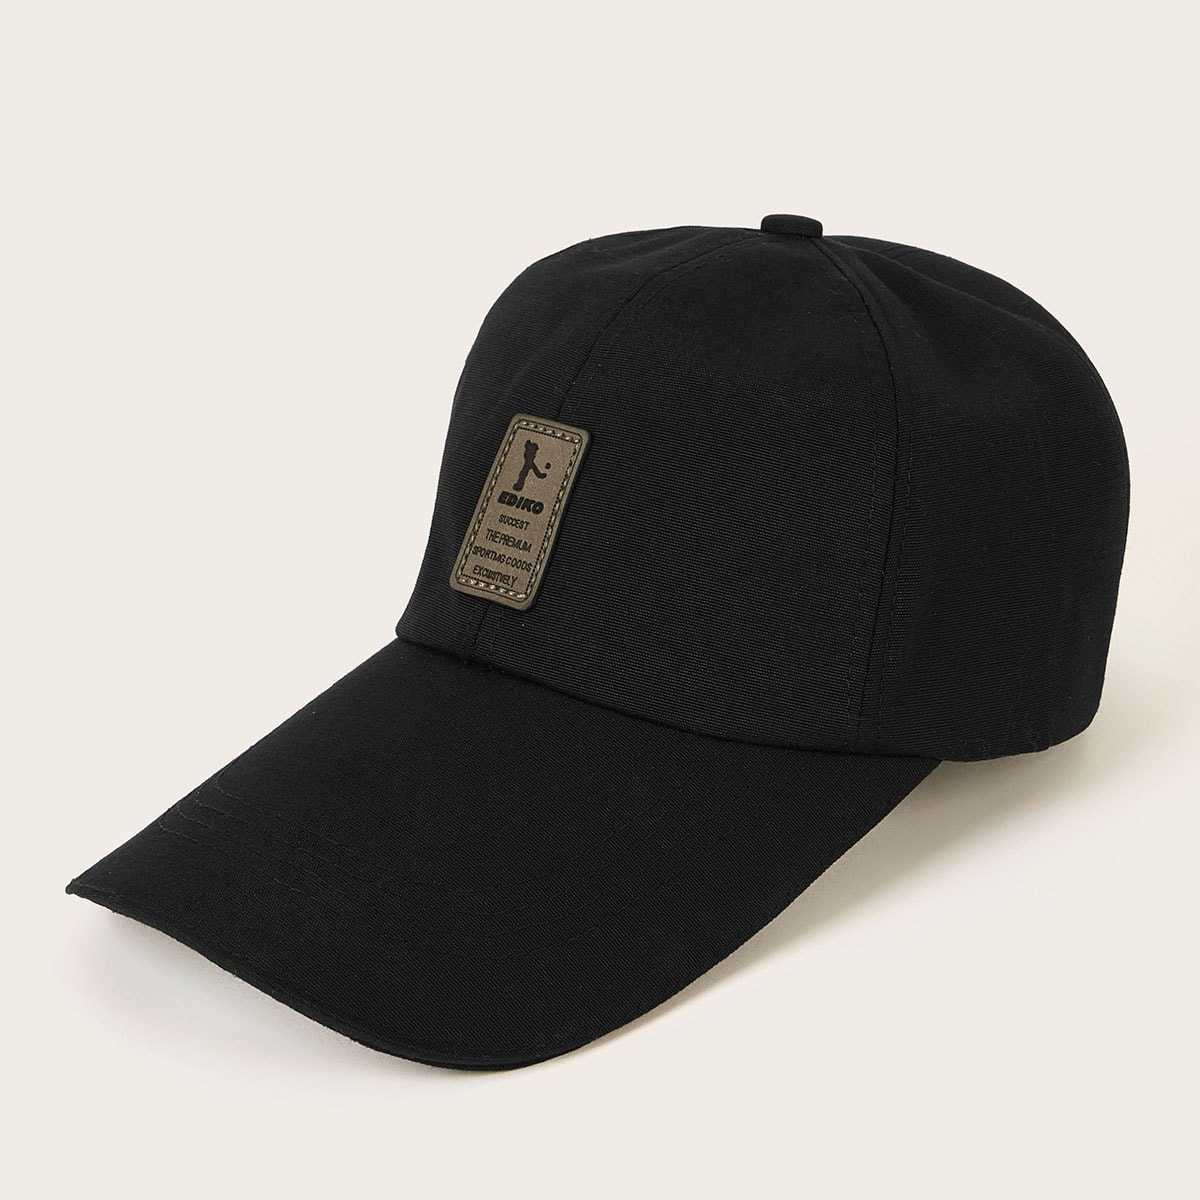 Guys Slogan Patched Baseball Cap in Black by ROMWE on GOOFASH